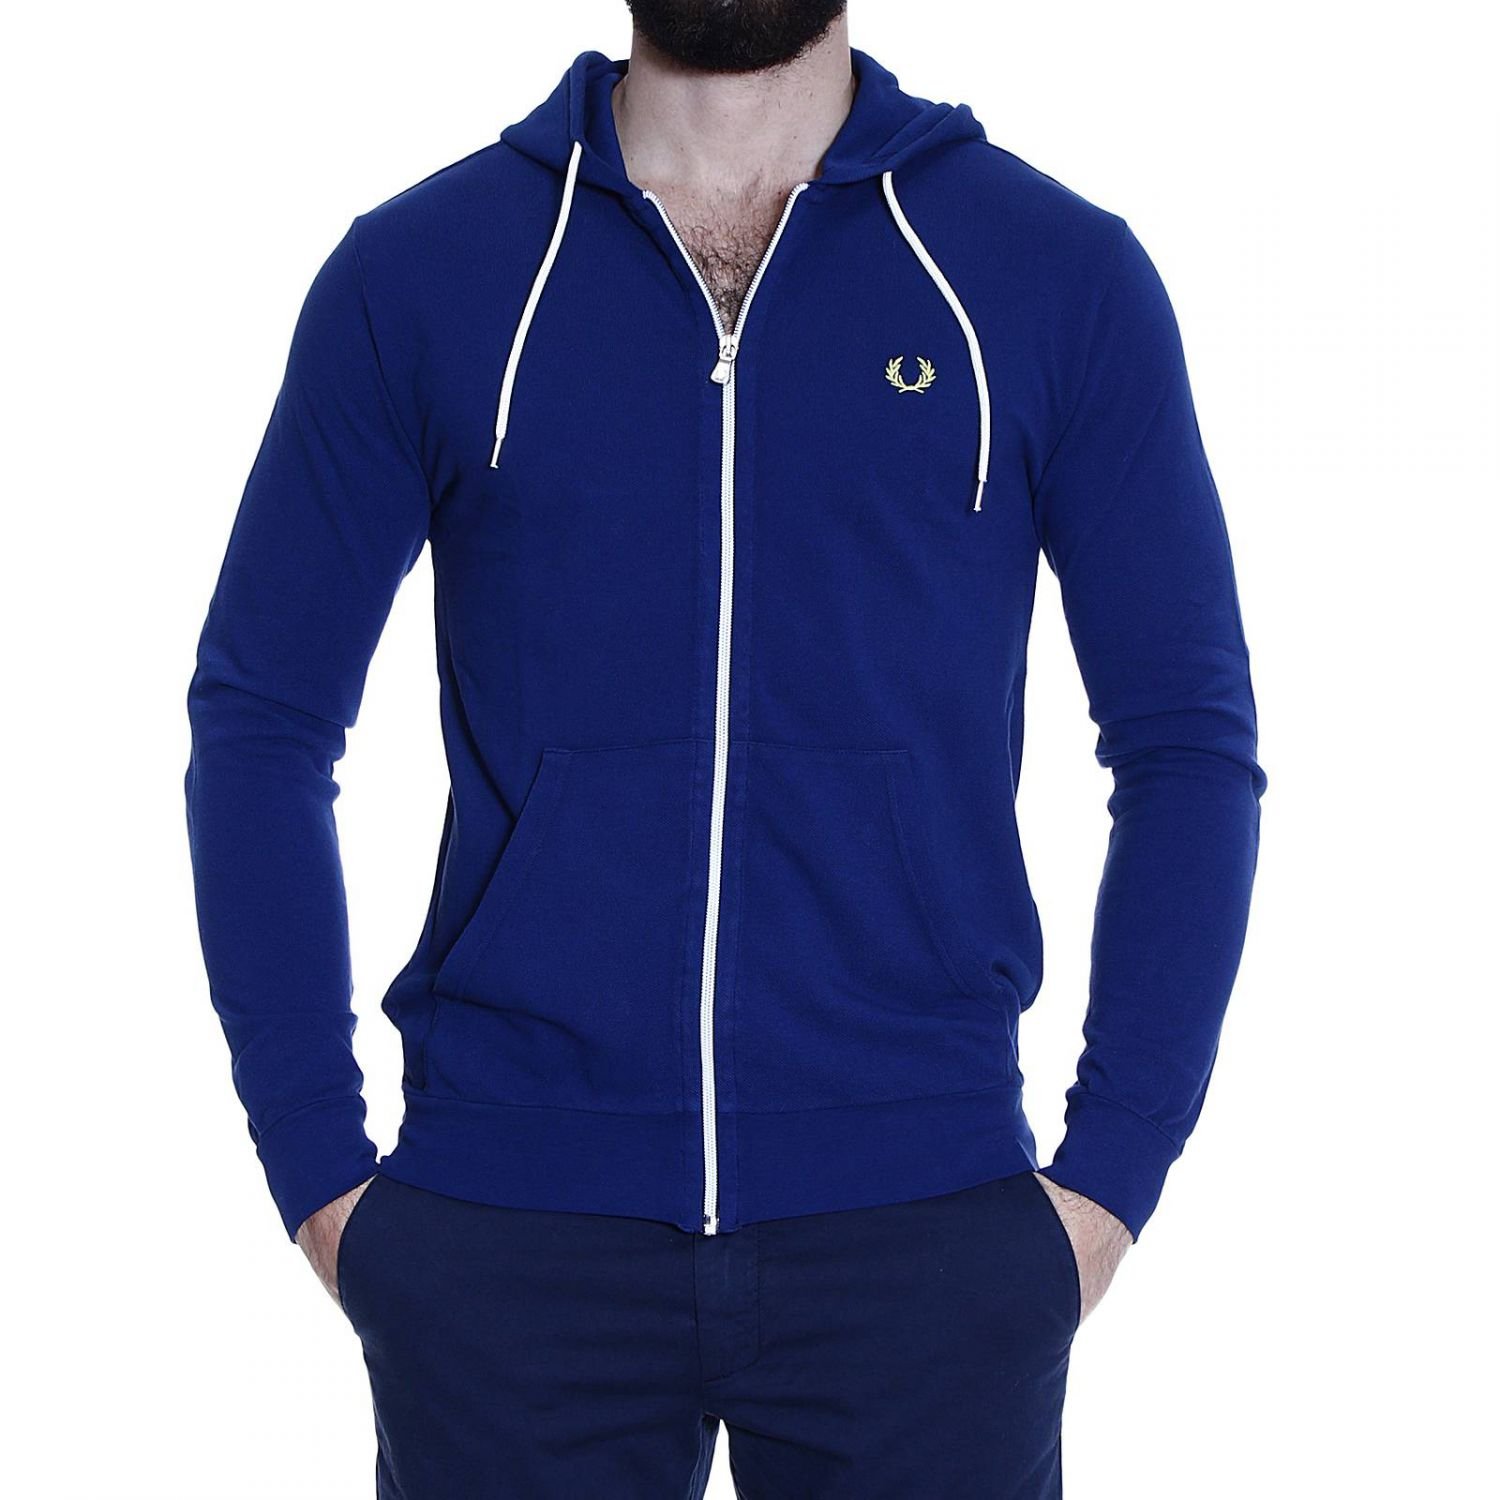 fred perry sweater sweetshirt piquet with hoodie in blue. Black Bedroom Furniture Sets. Home Design Ideas